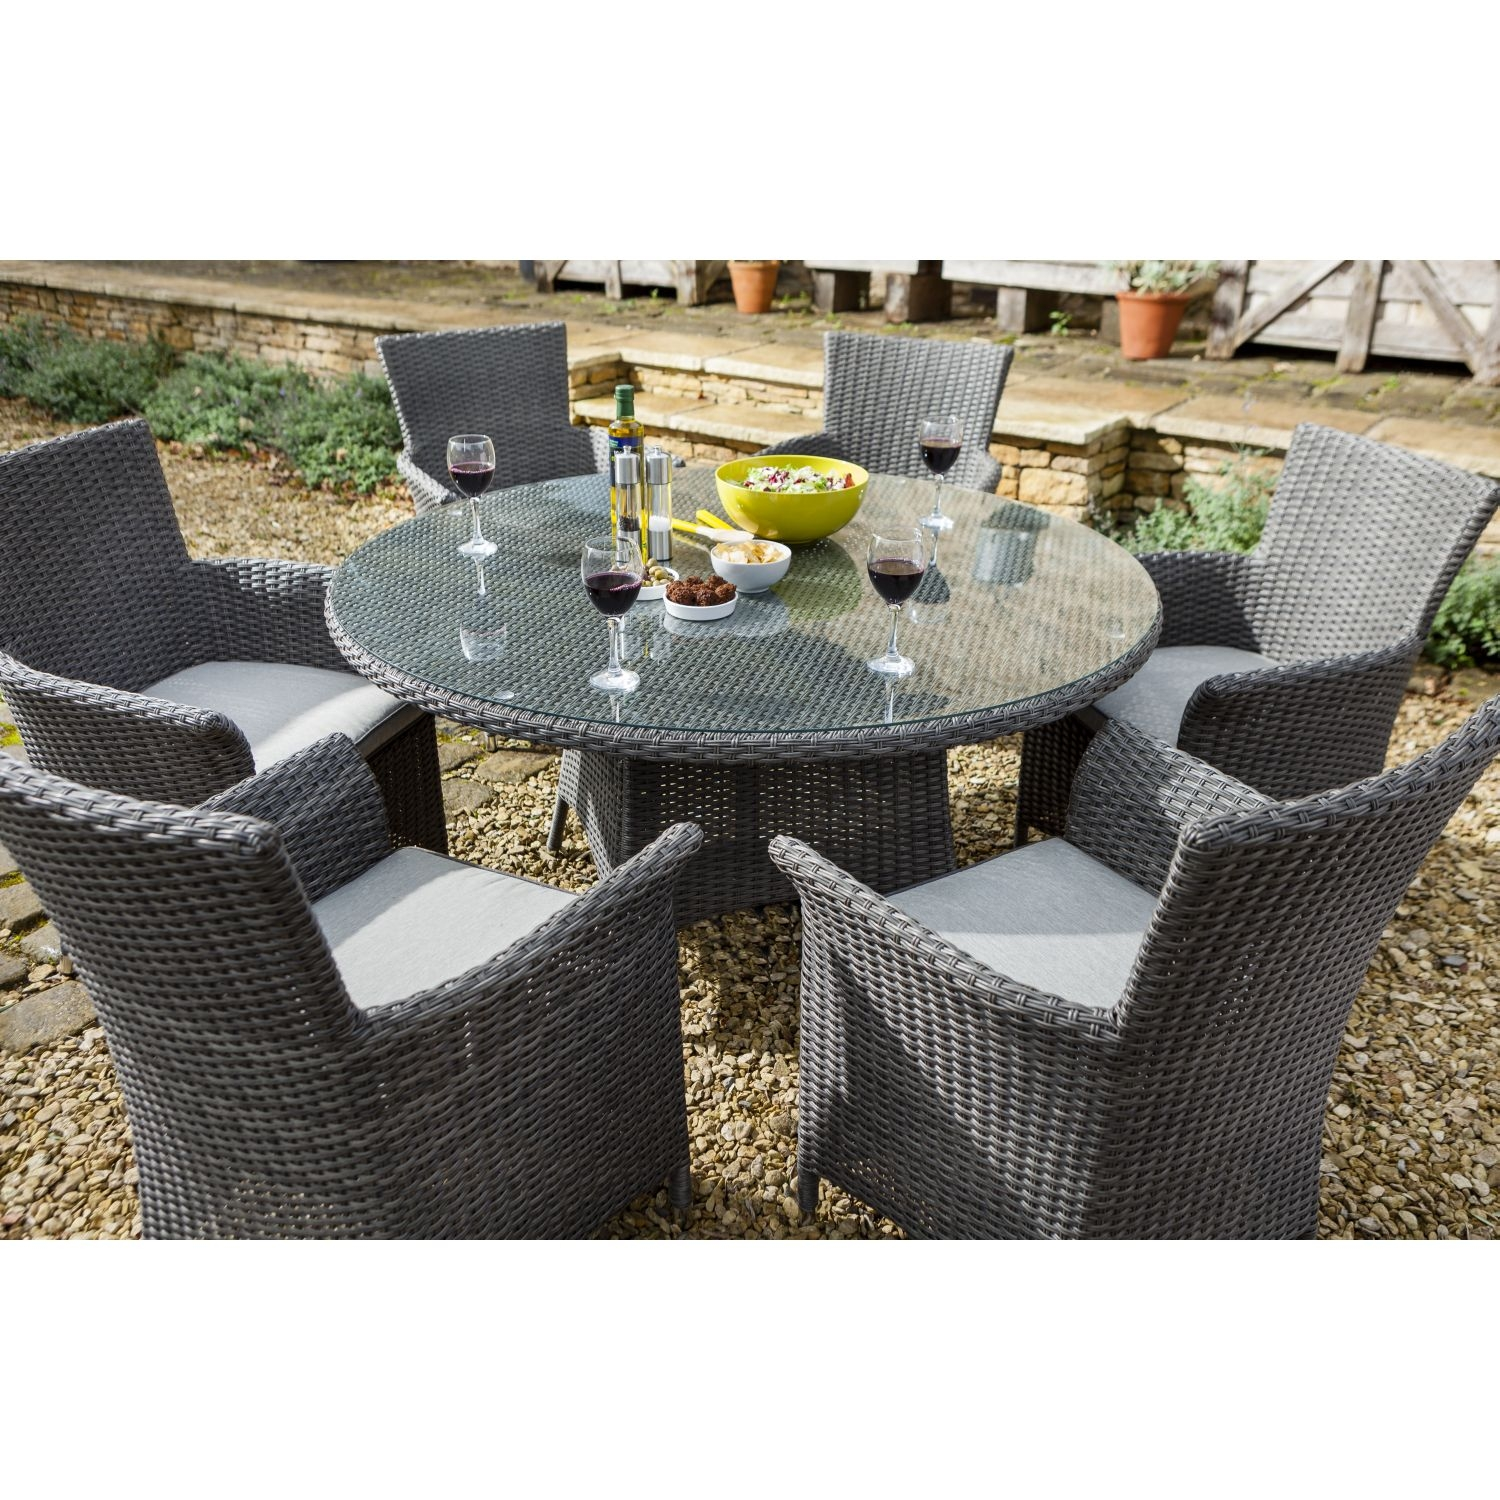 Outdoor Table And Chairs Commercial